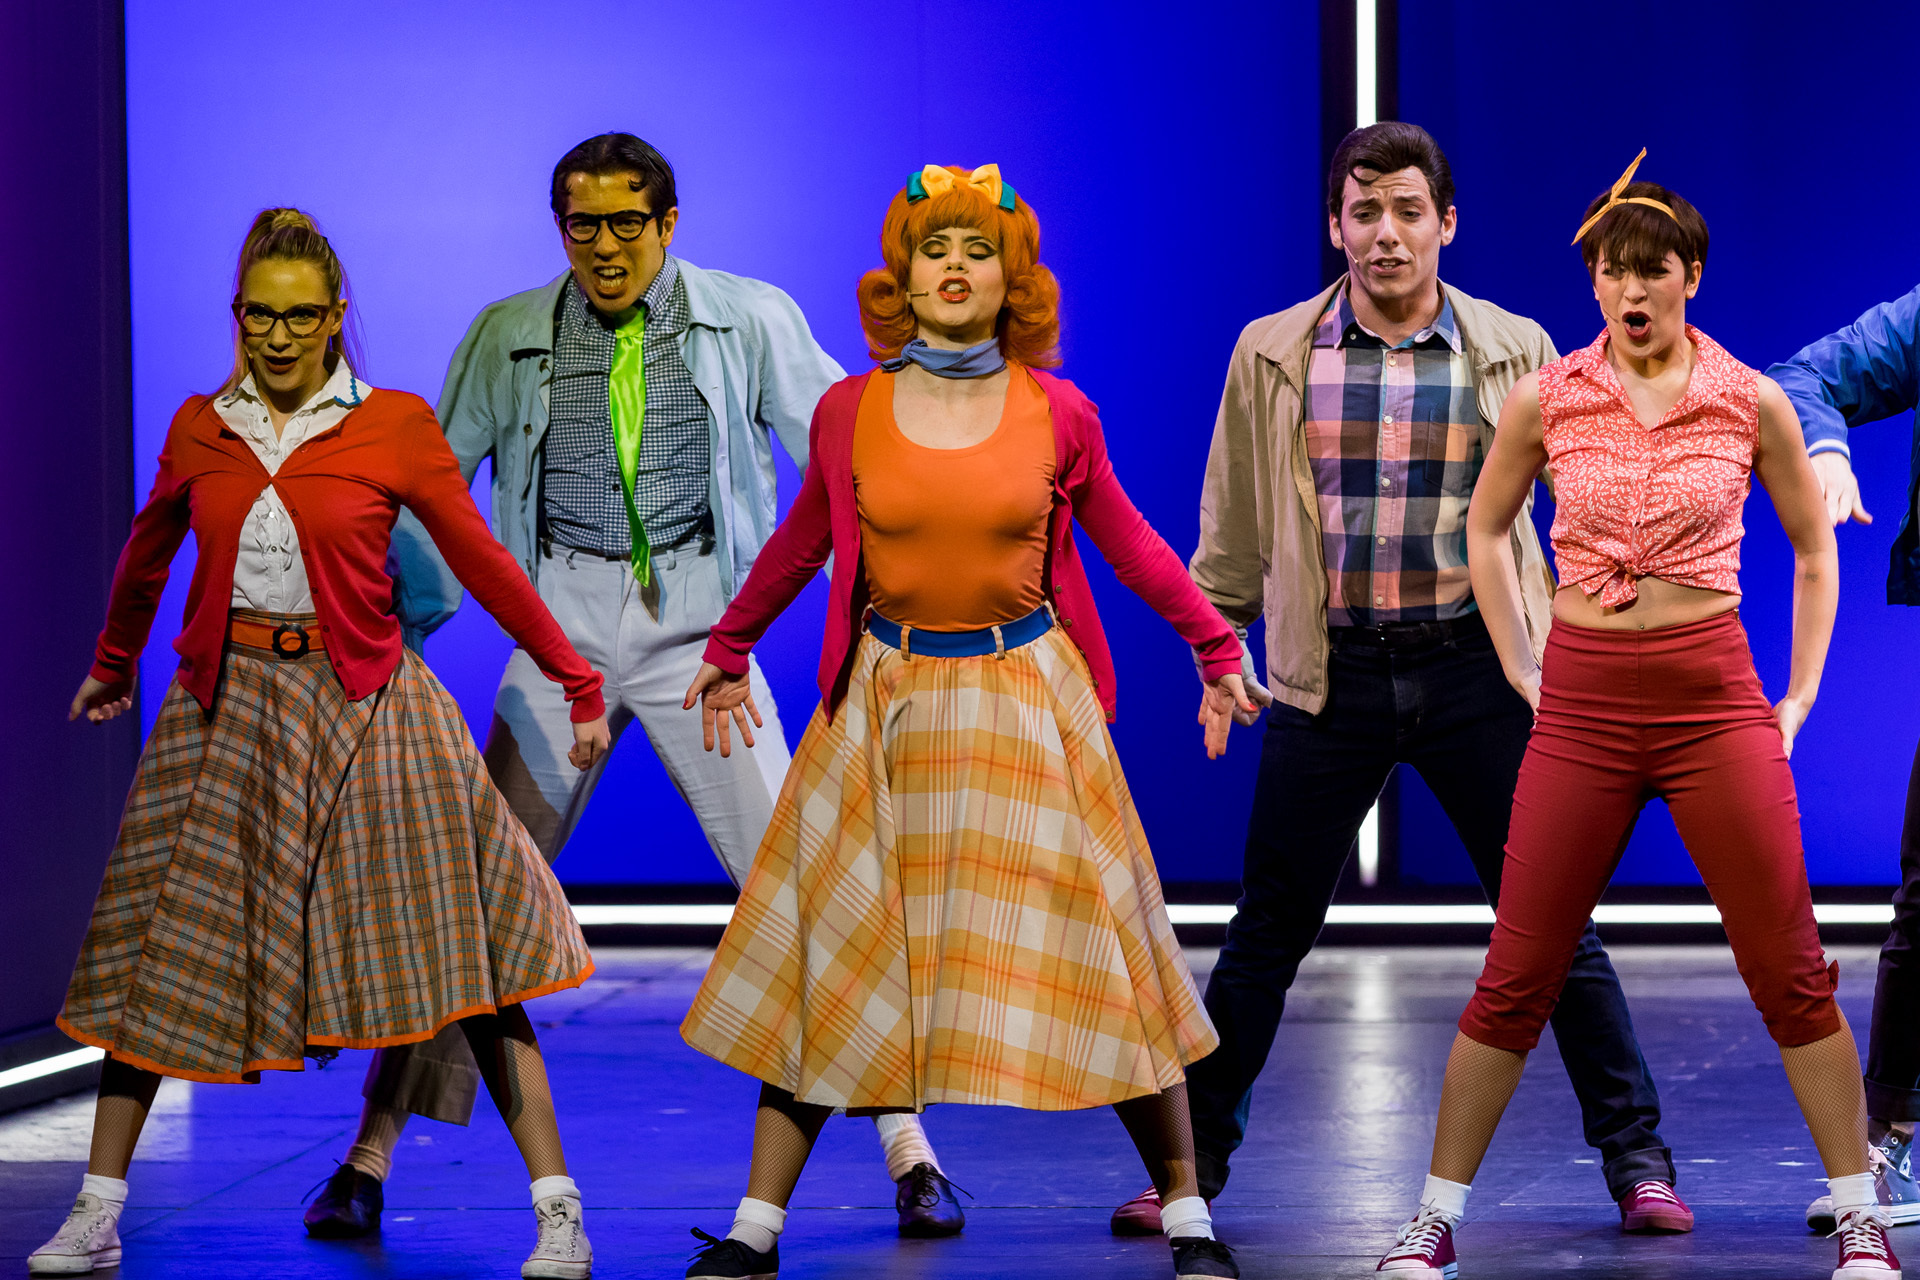 2017_03_08_Grease_212232_7D2_6888